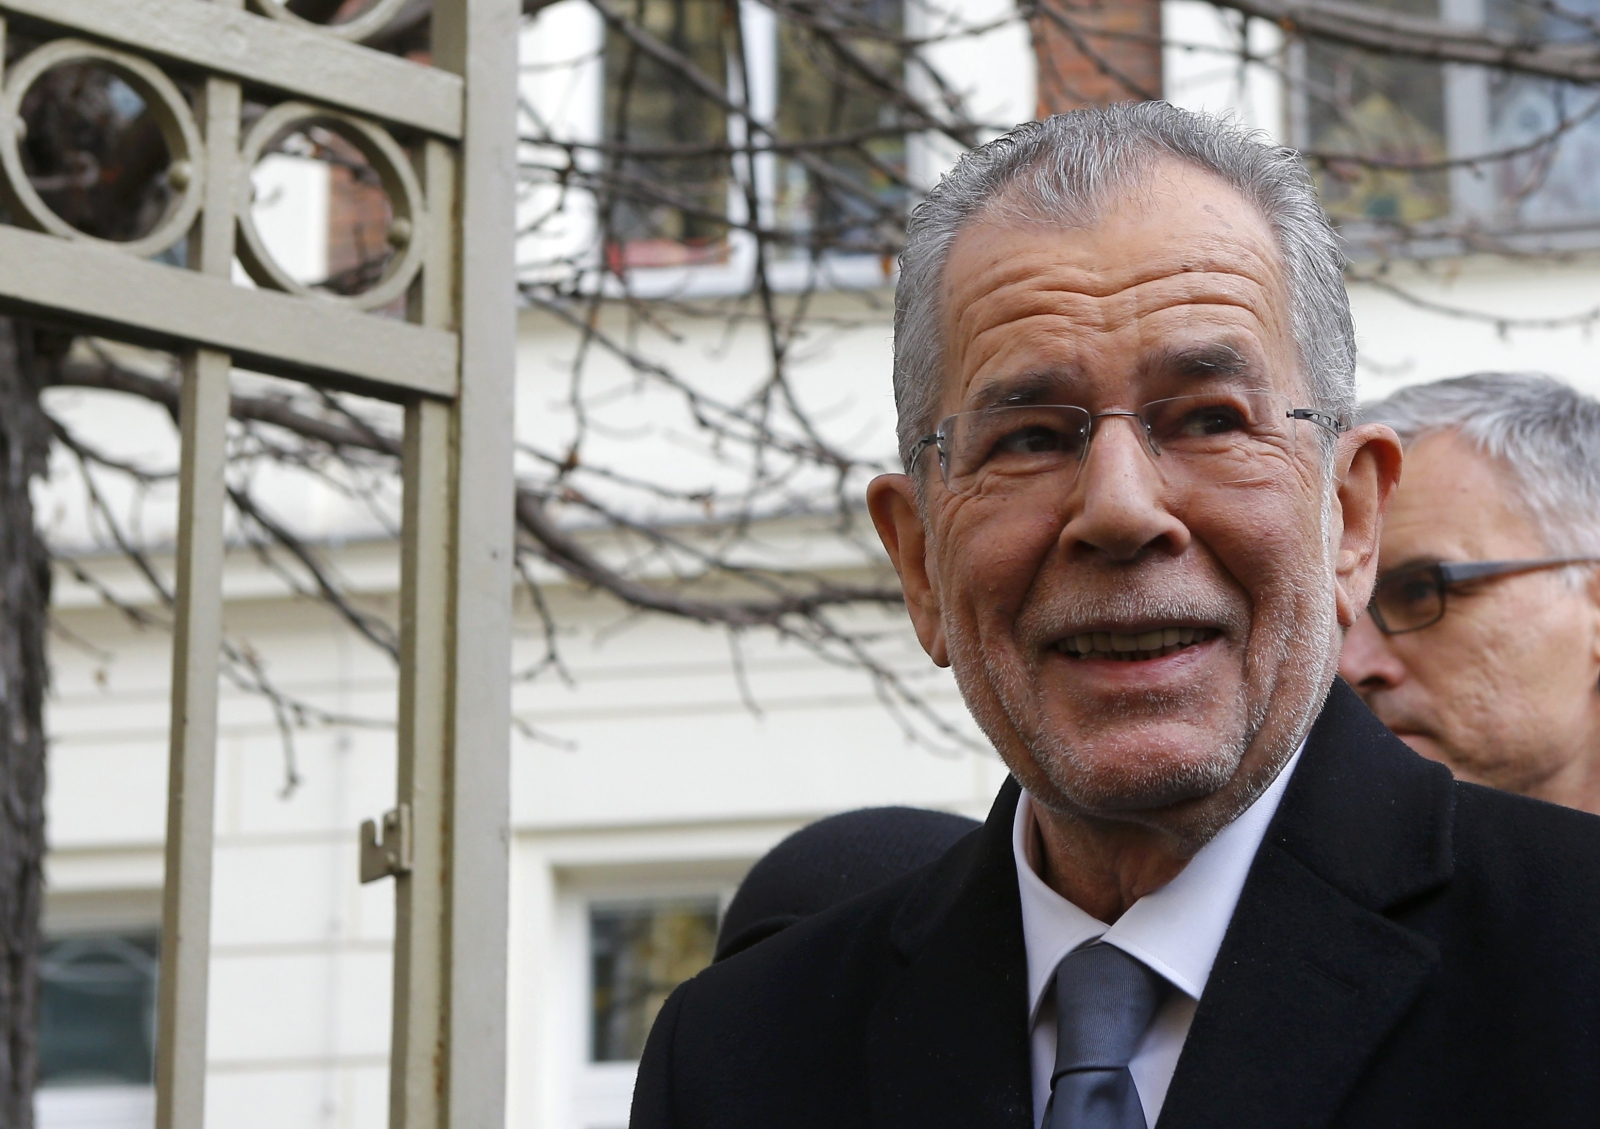 Alexander Van der Bellen in lead inpresidentialelection